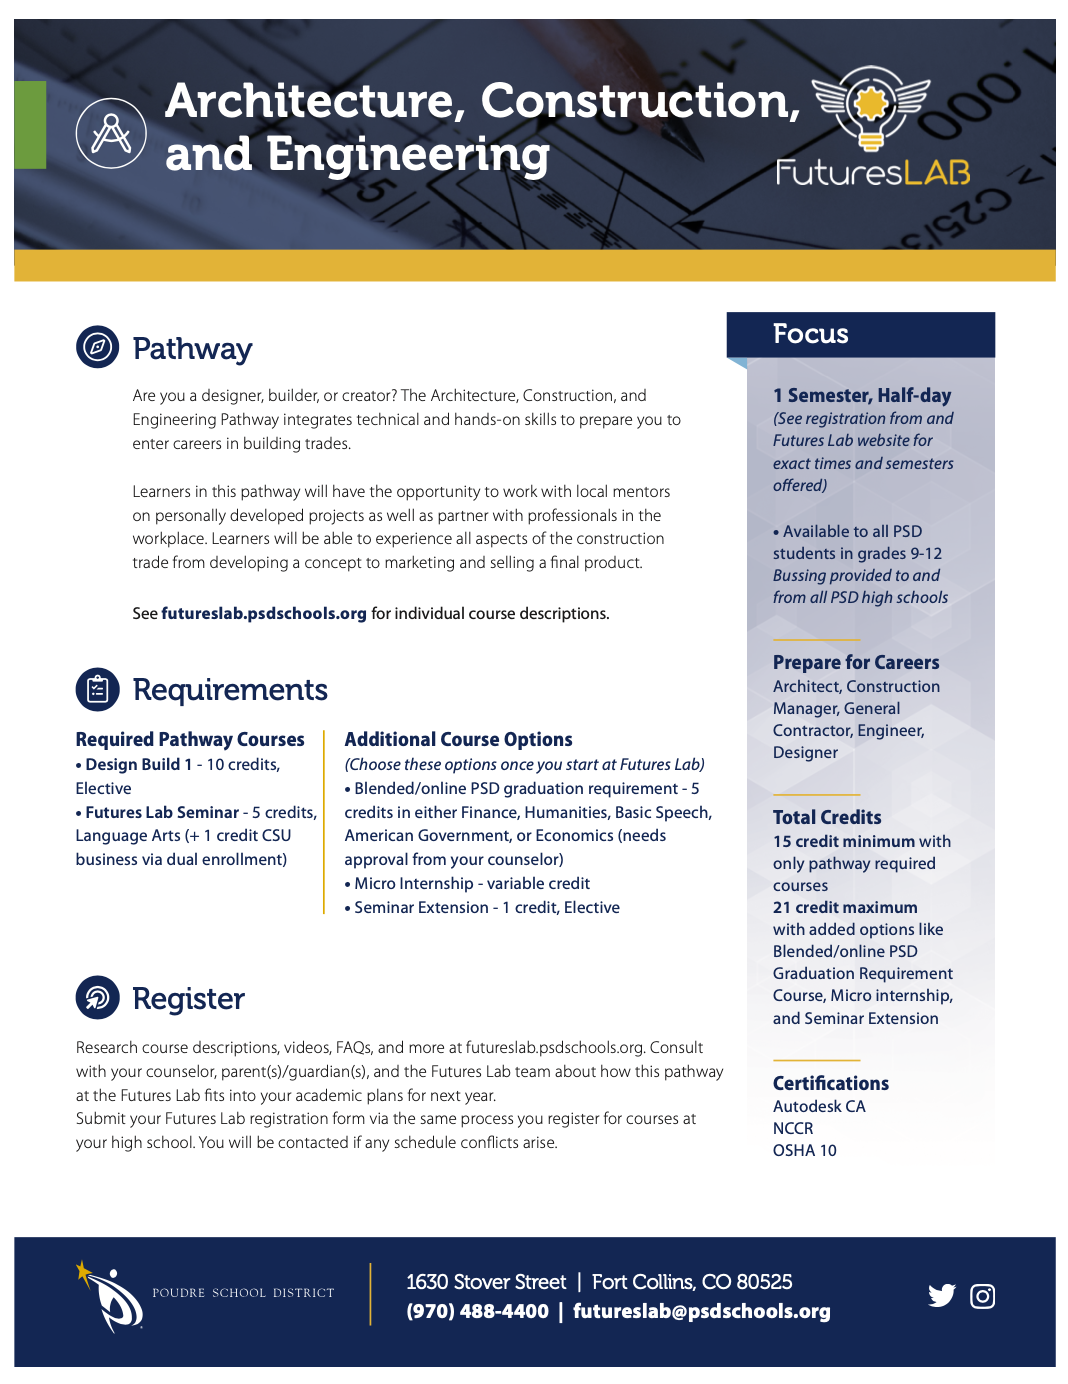 Architecture, Construction, & Engineering flyer